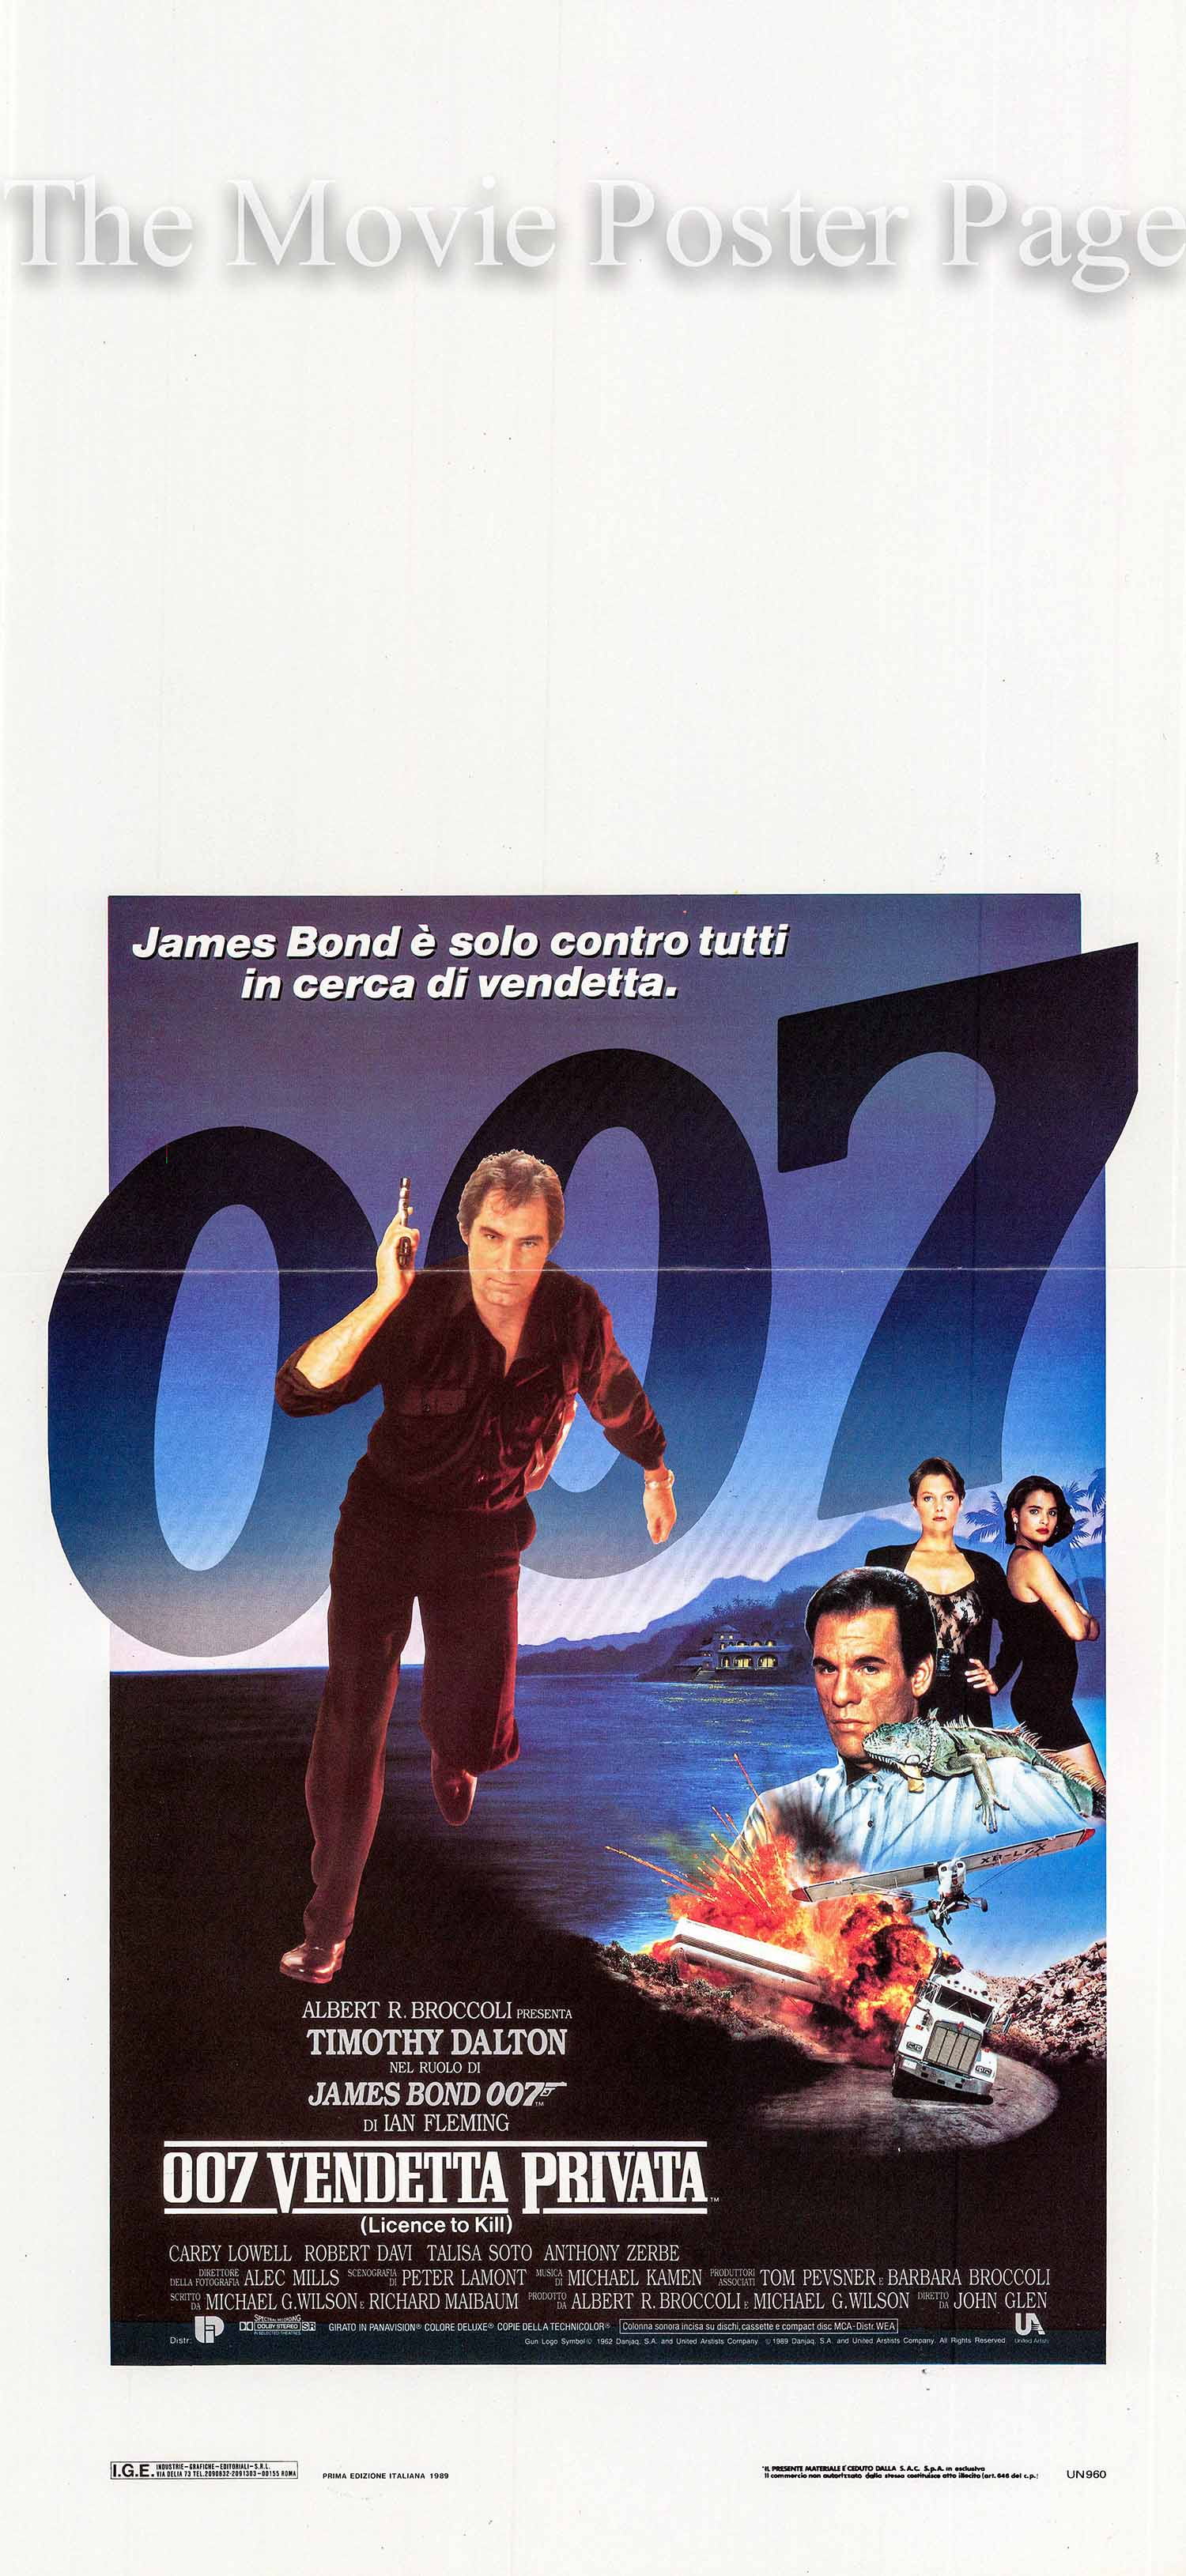 Pictured is an Italian locandina poster for the 1989 John Glen film Licence to Kill starring Timothy Dalton as James Bond.